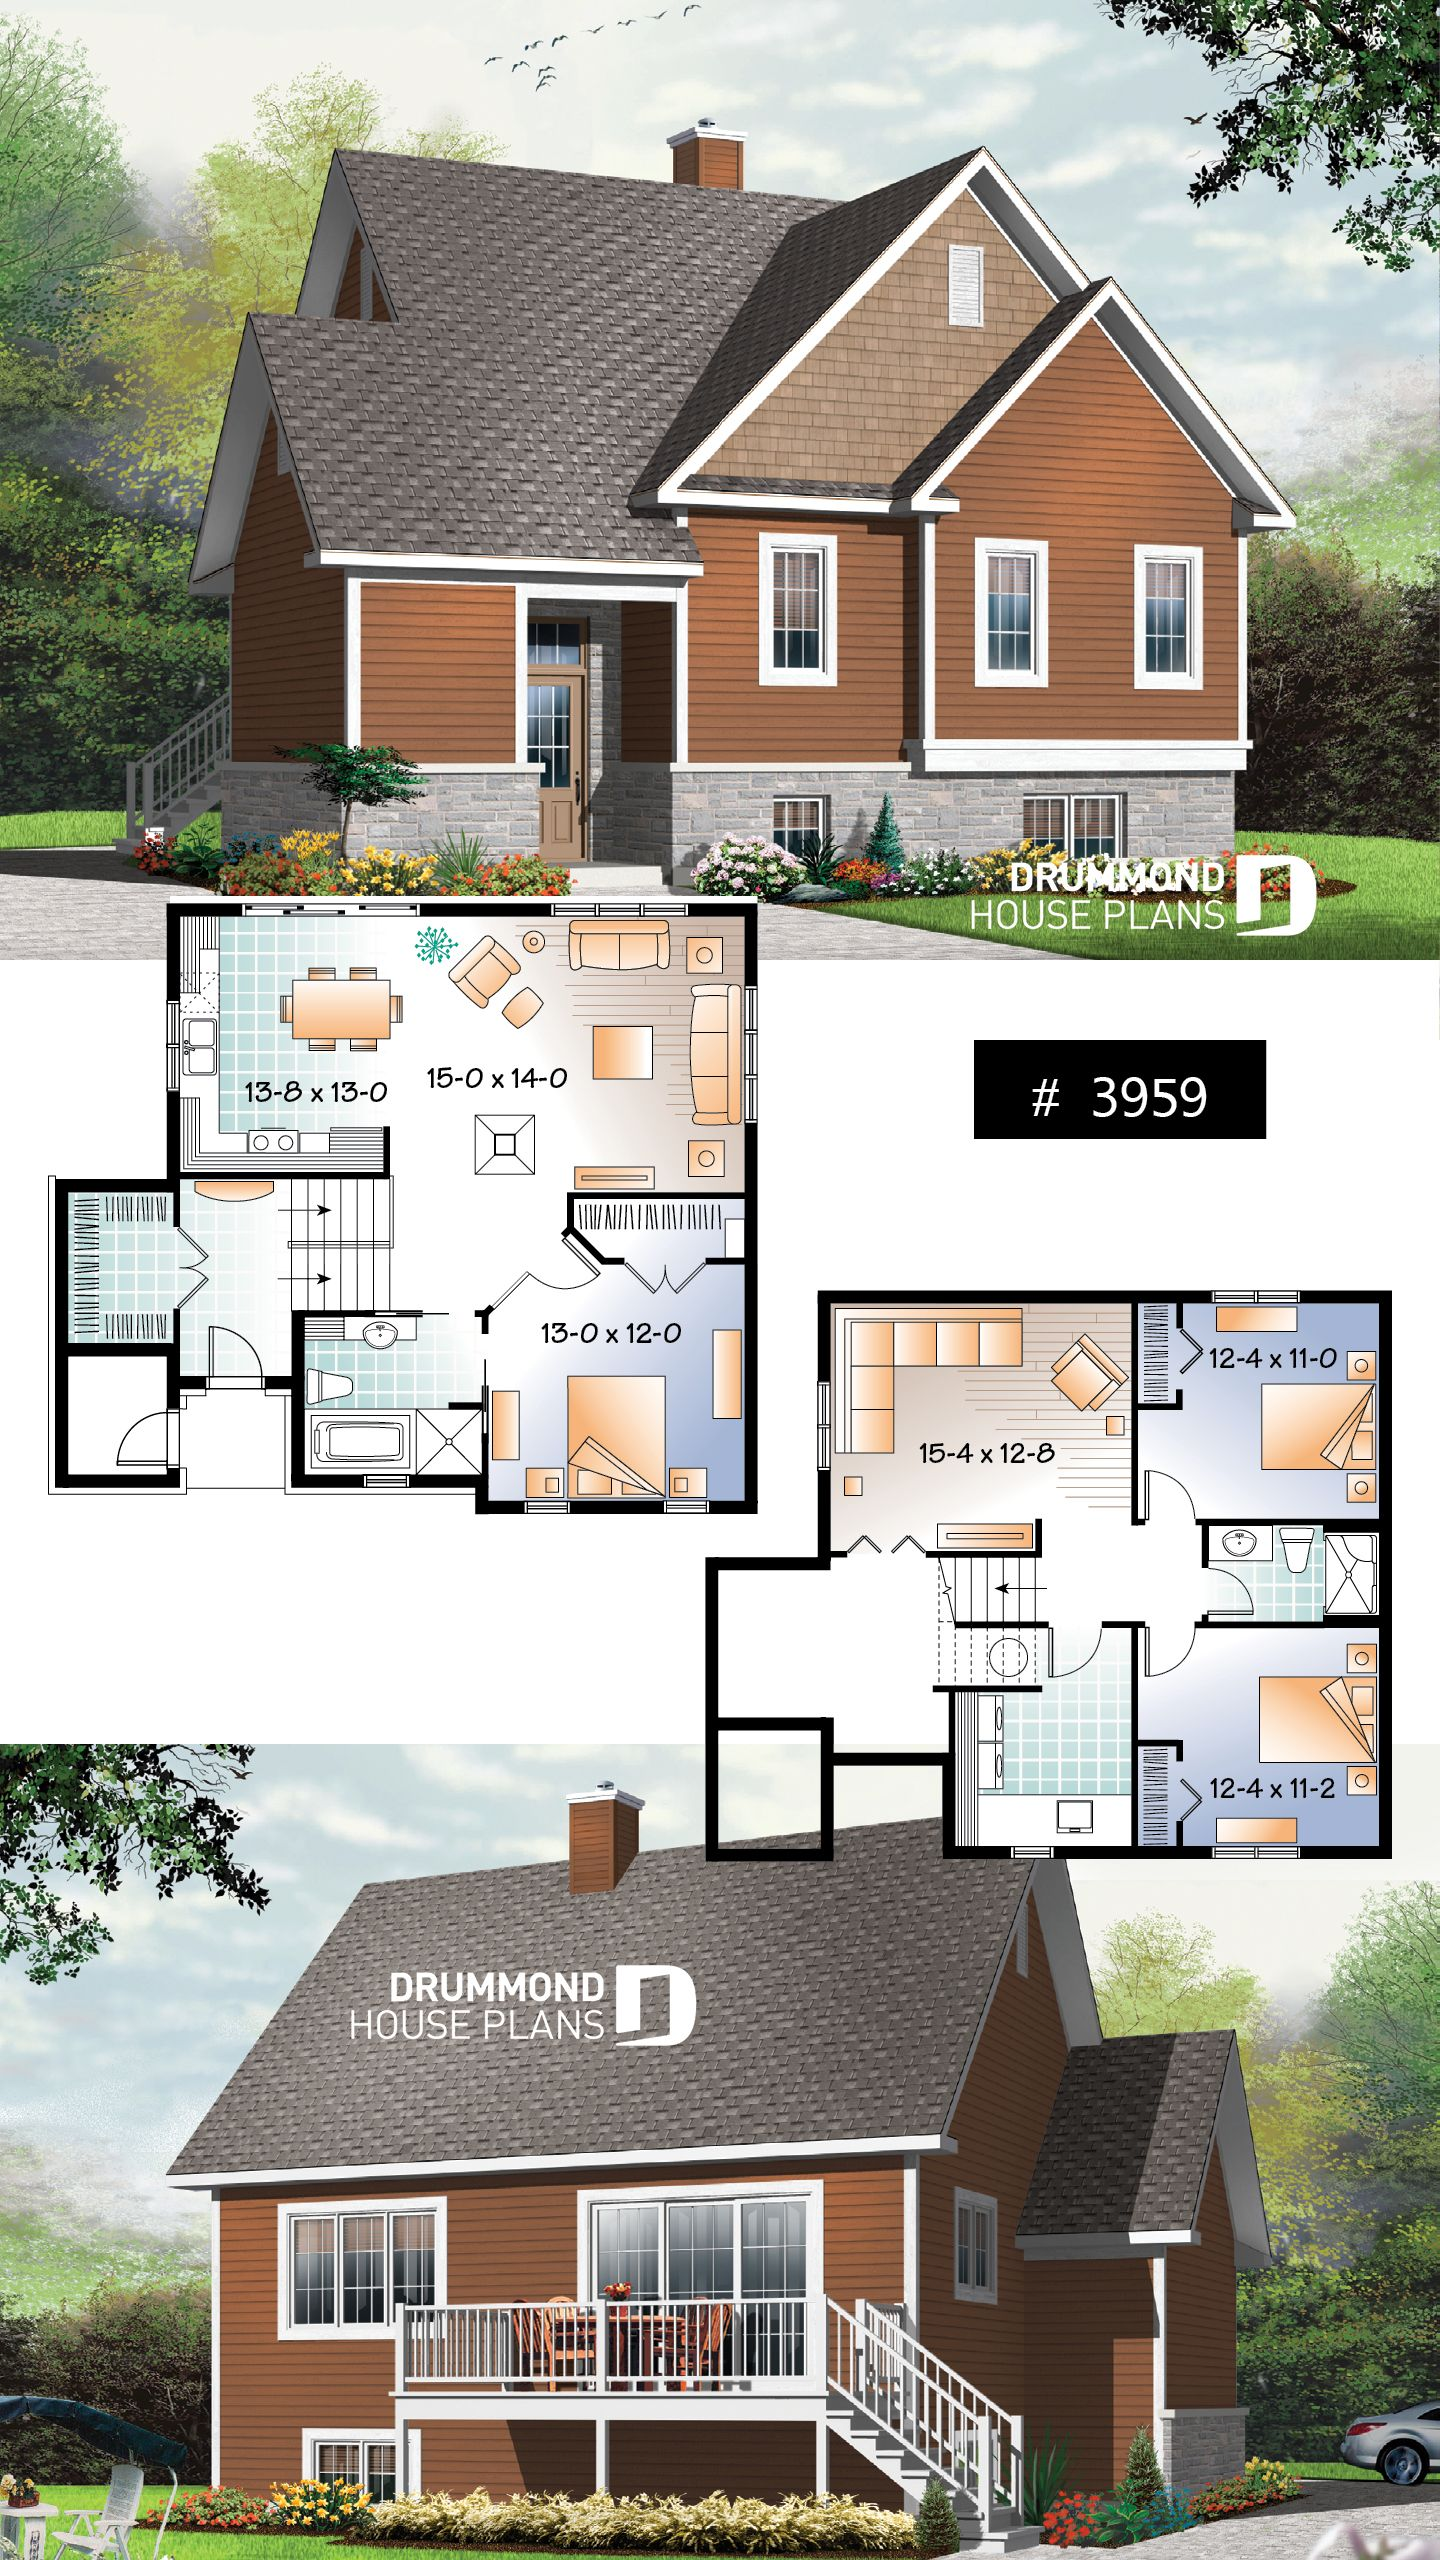 Discover The Plan 3959 Hearthside Which Will Please You For Its 1 2 3 4 Bedrooms And For Its Cottage Chalet Cabin Styles House Plans House Layout Plans Drummond House Plans